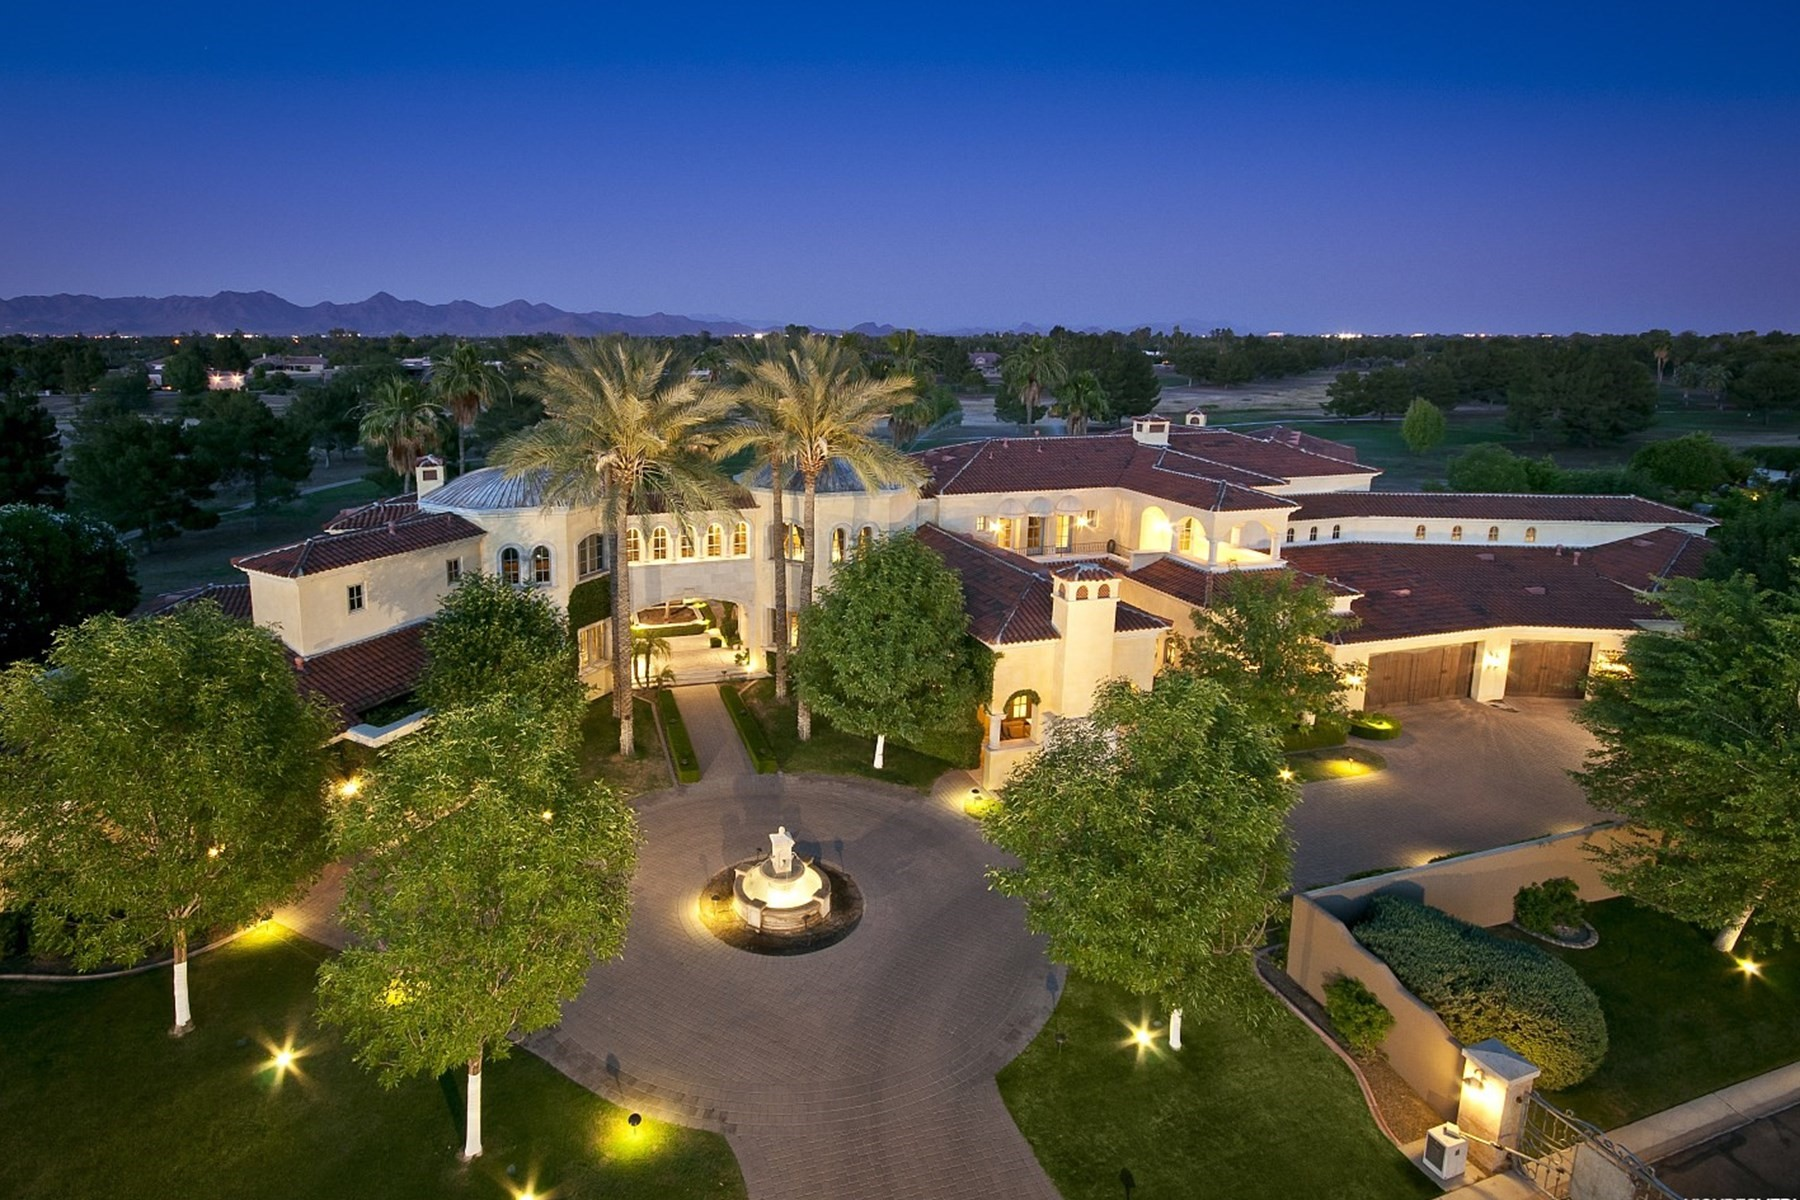 Villa per Vendita alle ore Classic Mediterranean Design Grand Estate on the golf course. 9403 N 55 ST Paradise Valley, Arizona, 85253 Stati Uniti